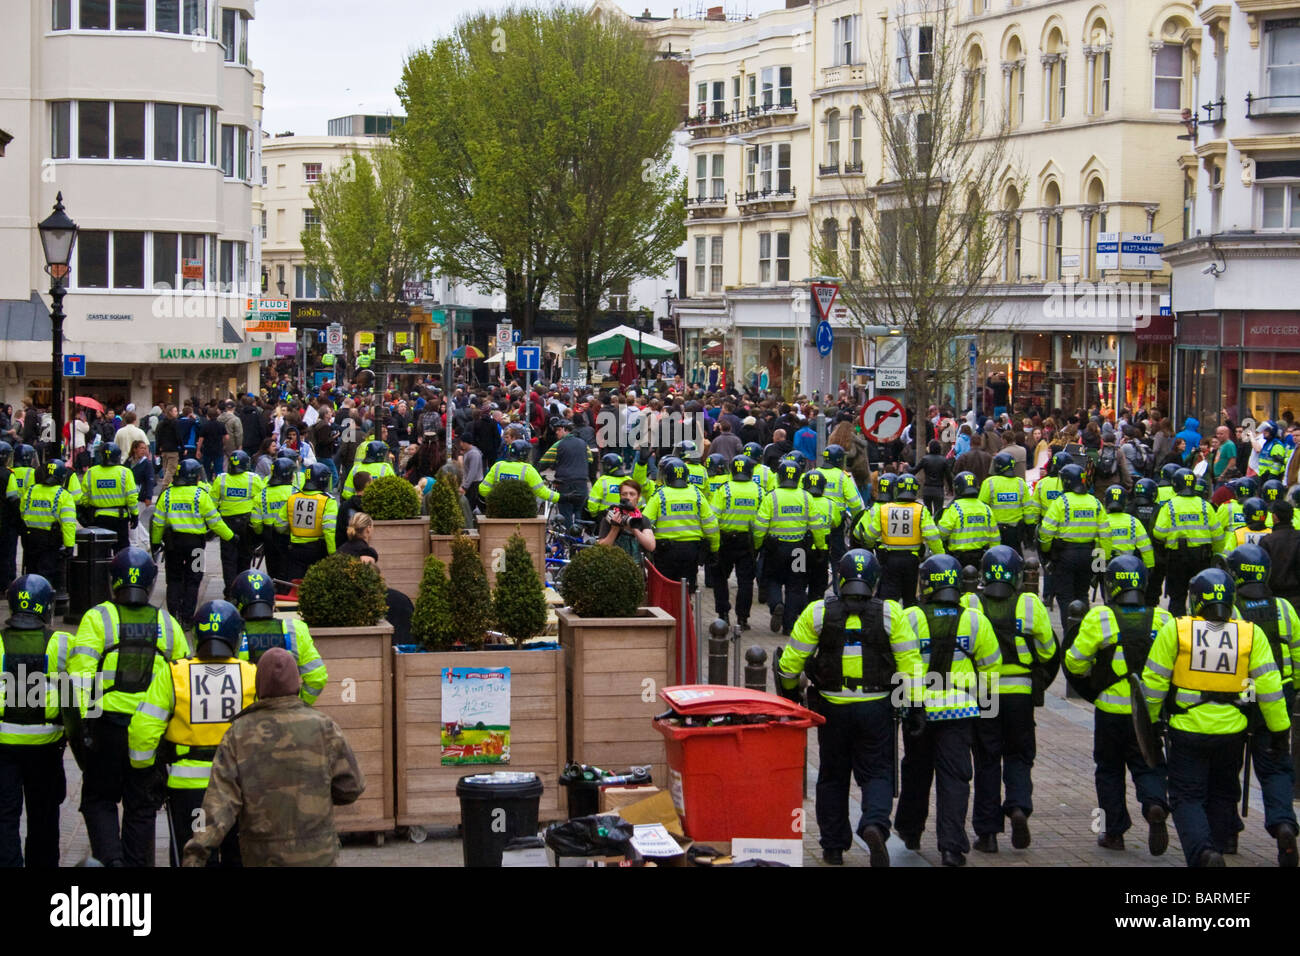 Lines of riot police contain crowds during may day protests in Brighton, Sussex, UK JPH0195 - Stock Image